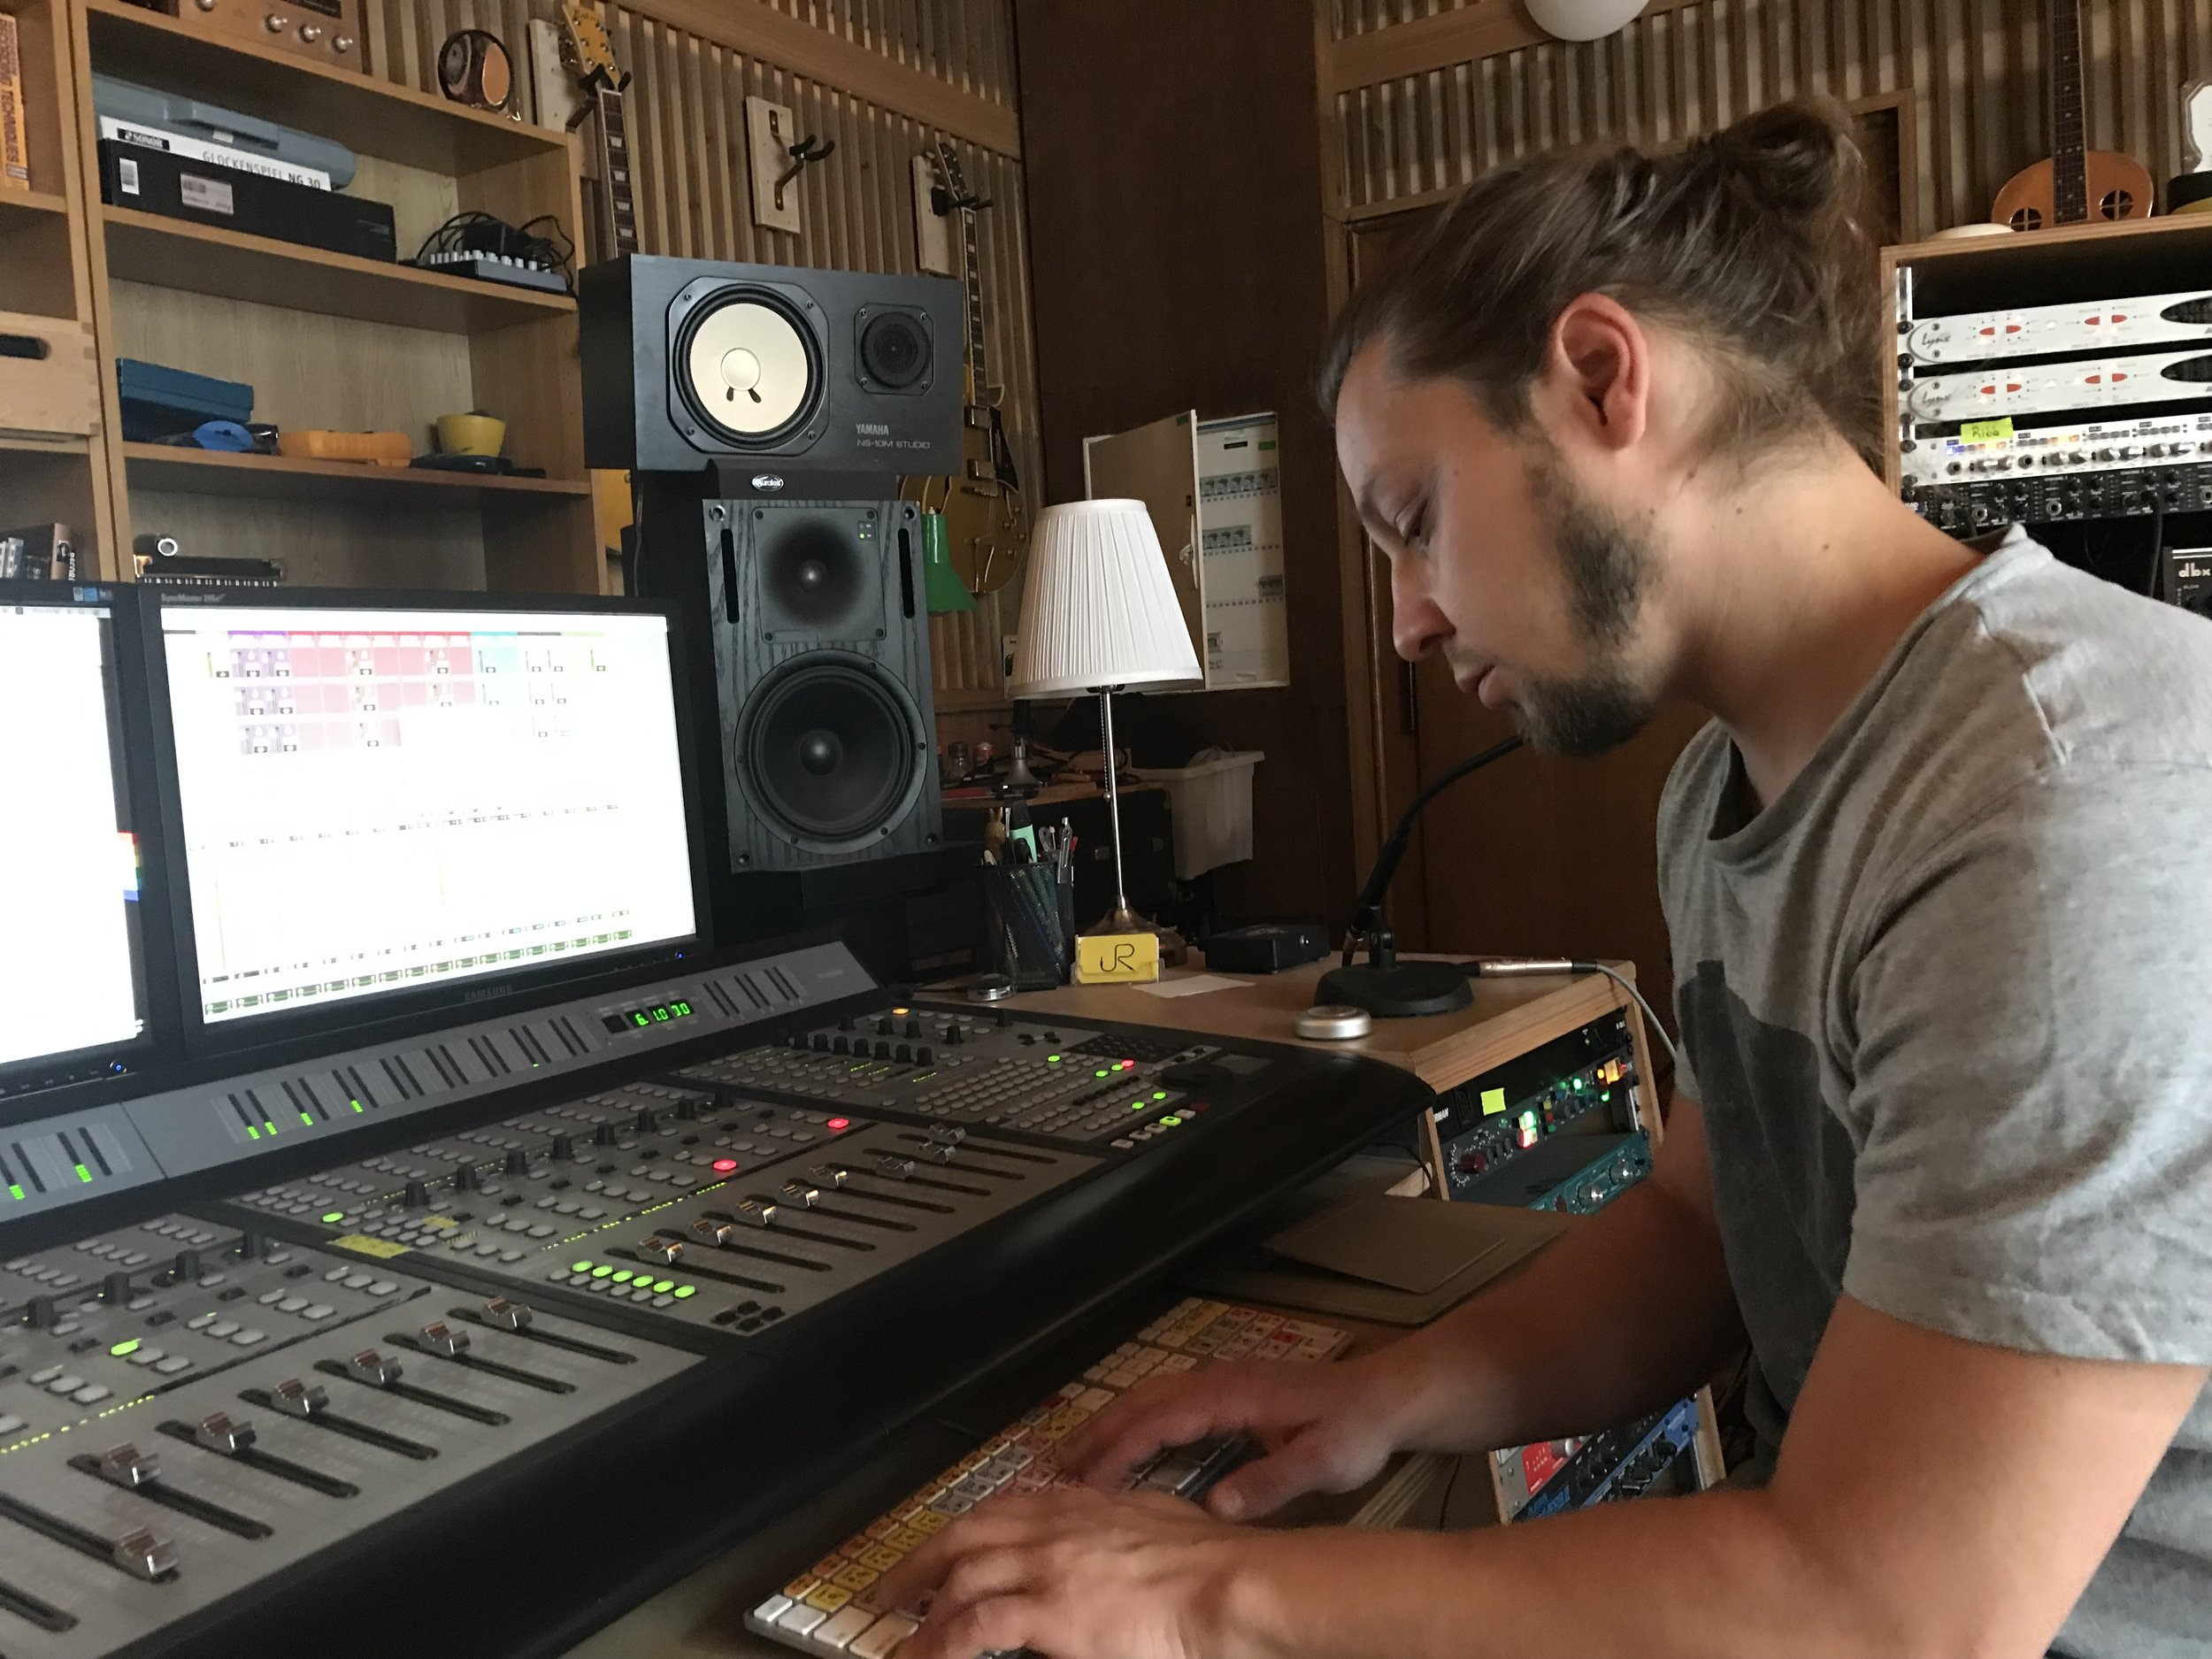 On the Board - Andy Schlegel at Tricon Studio, Funkhaus